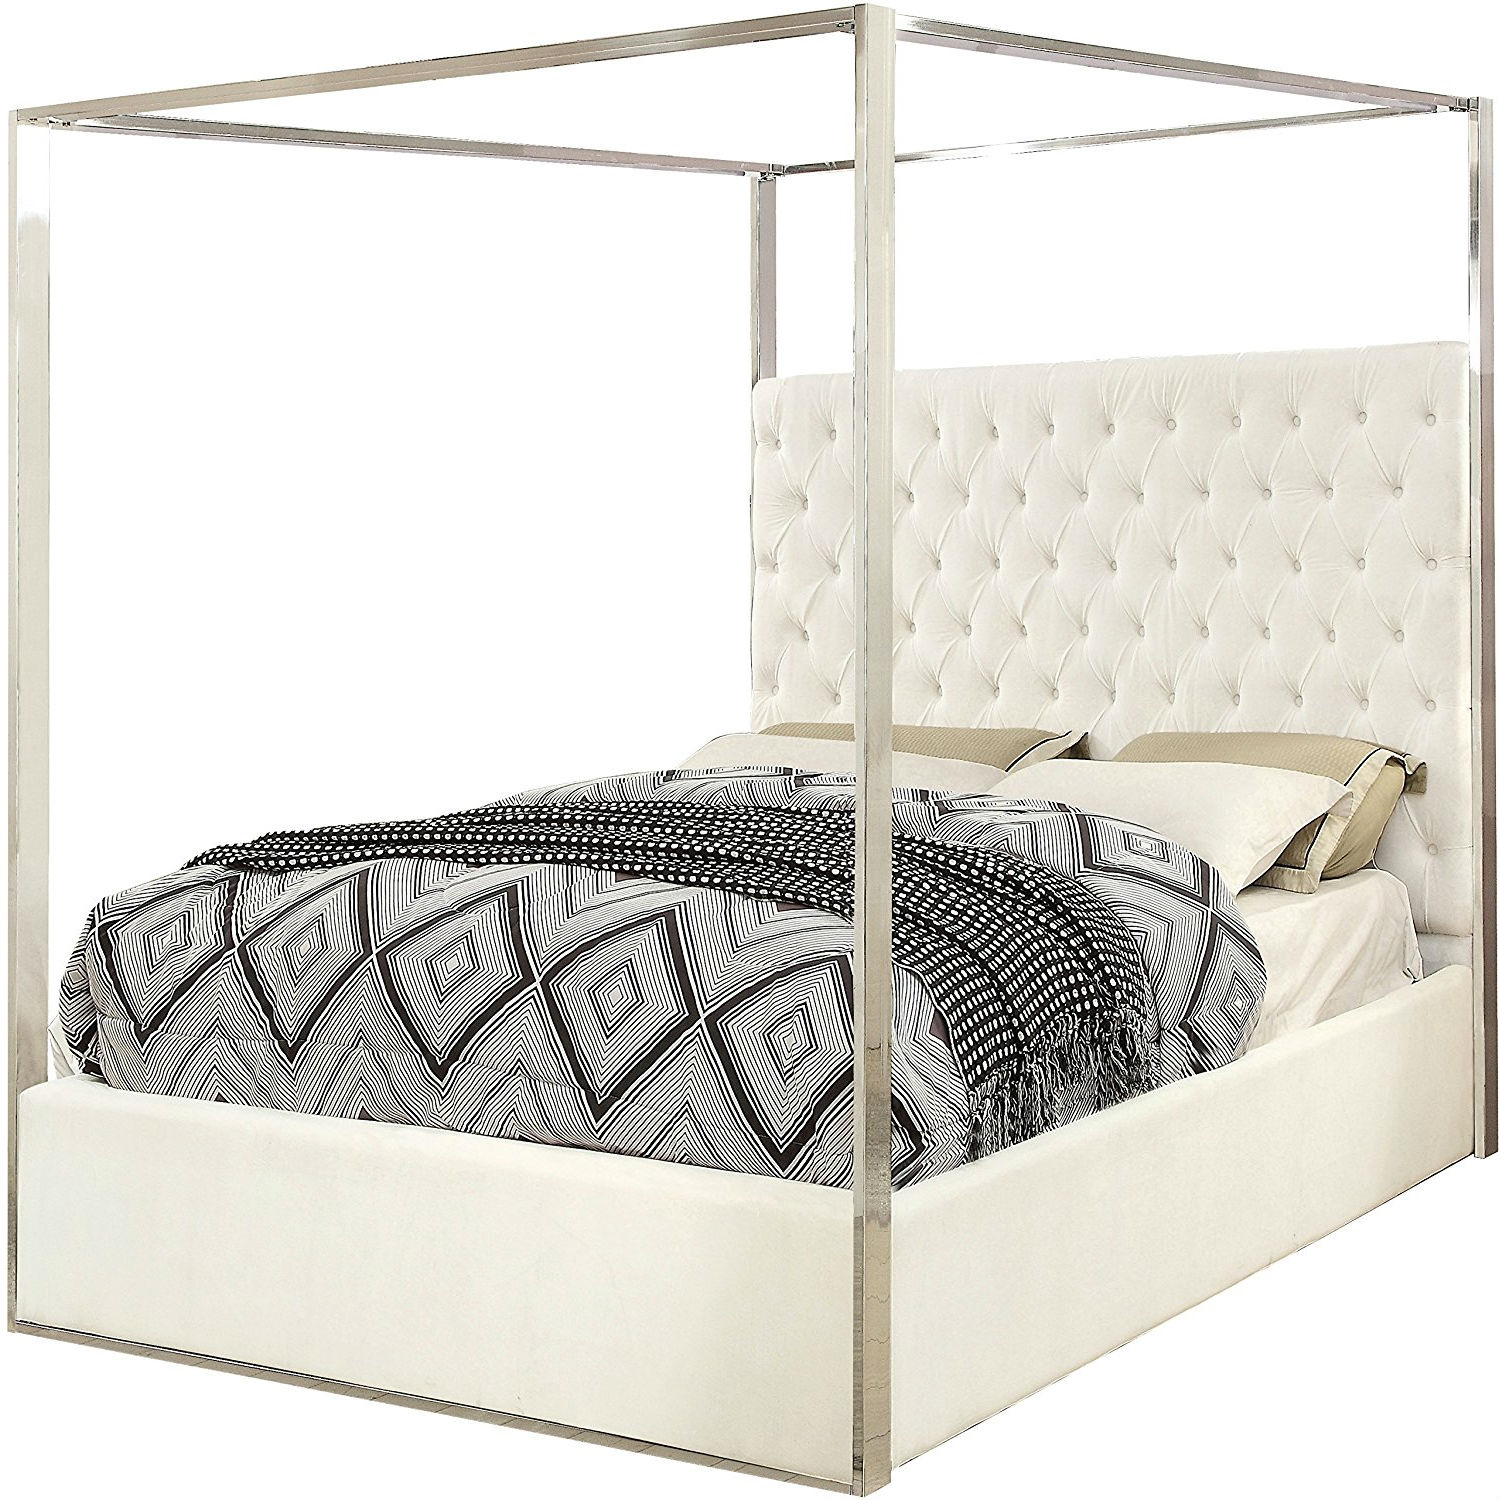 King Size White Velvet Upholstered Tufted Canopy Bed Frame With Chrome Canopy Fastfurnishings Com